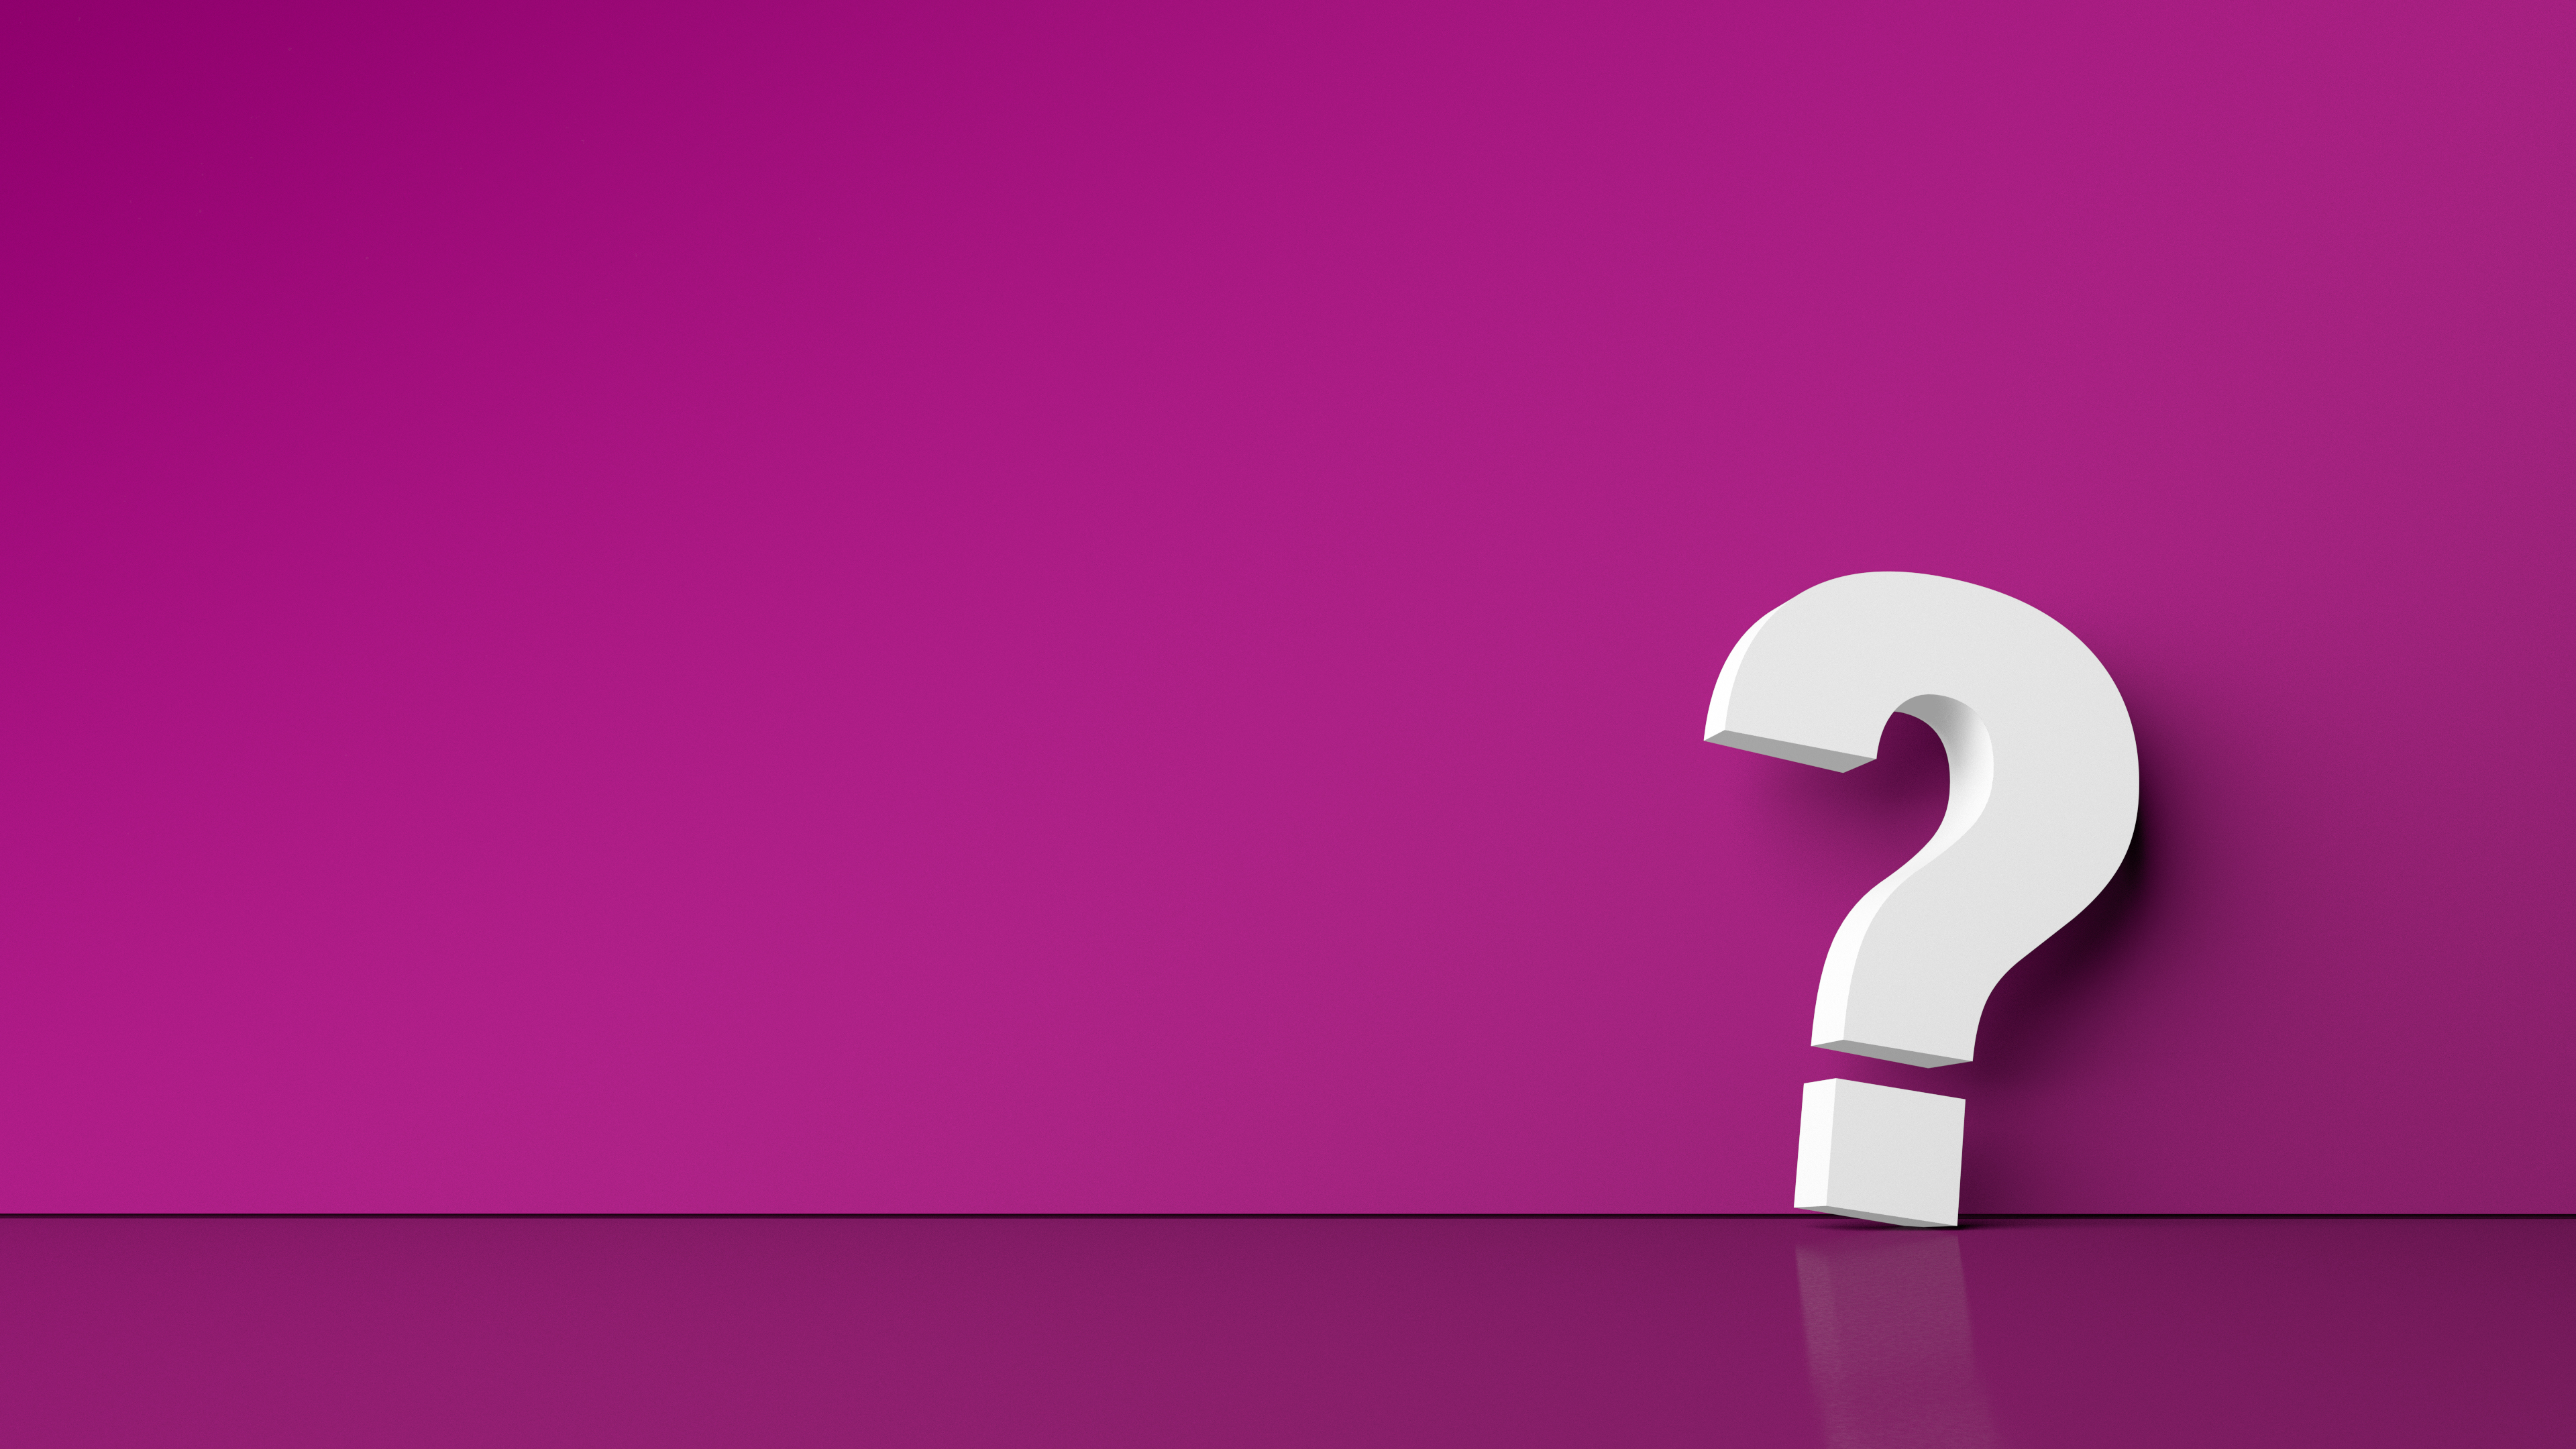 10 questions about cloud computing